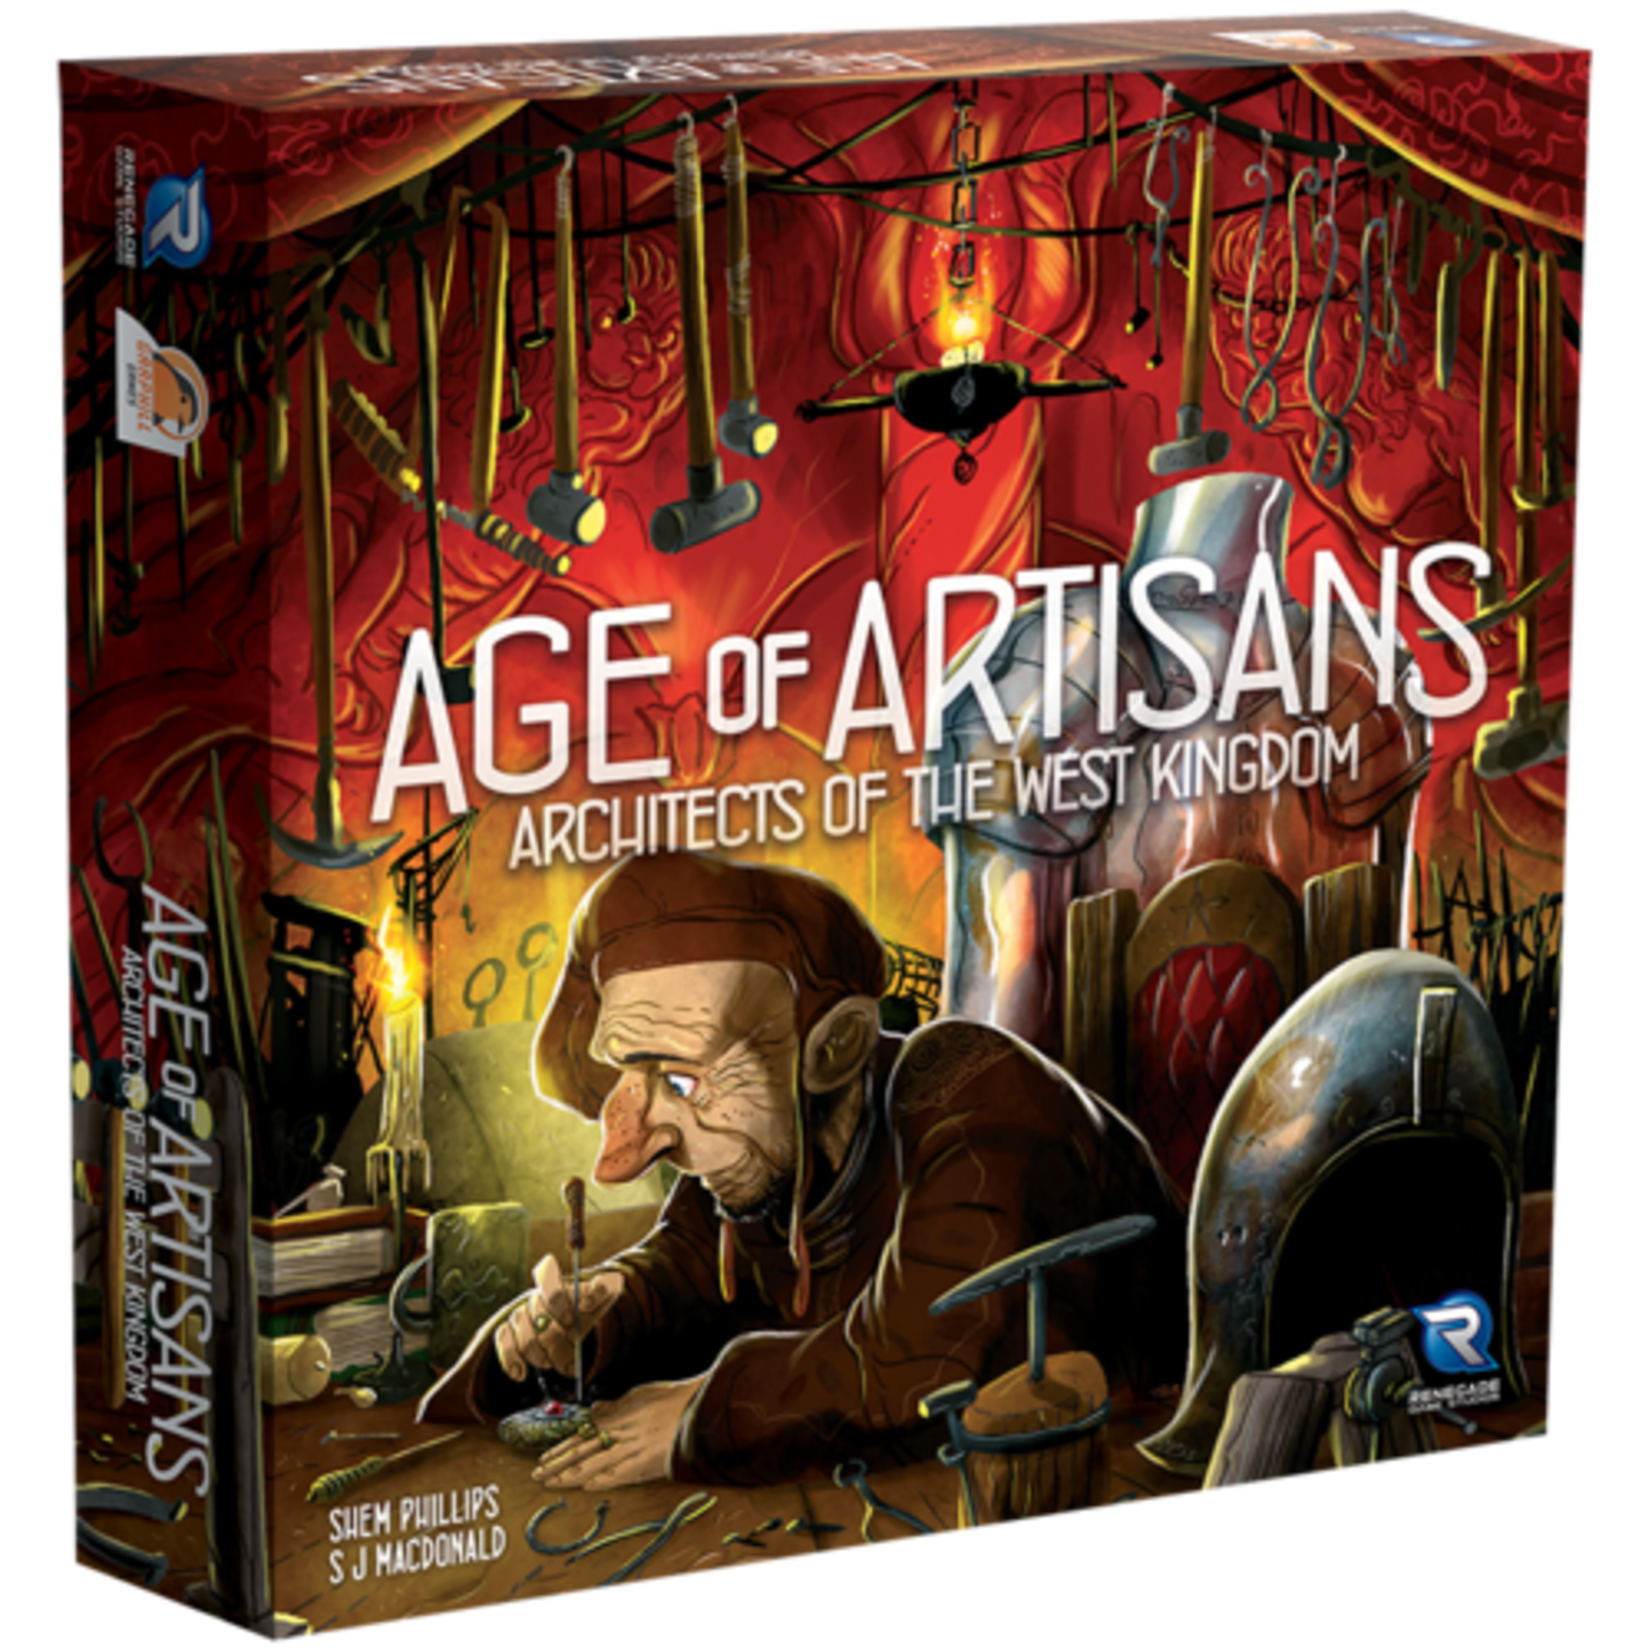 Renegade Architects of the West Kingdom: Age of Artisans